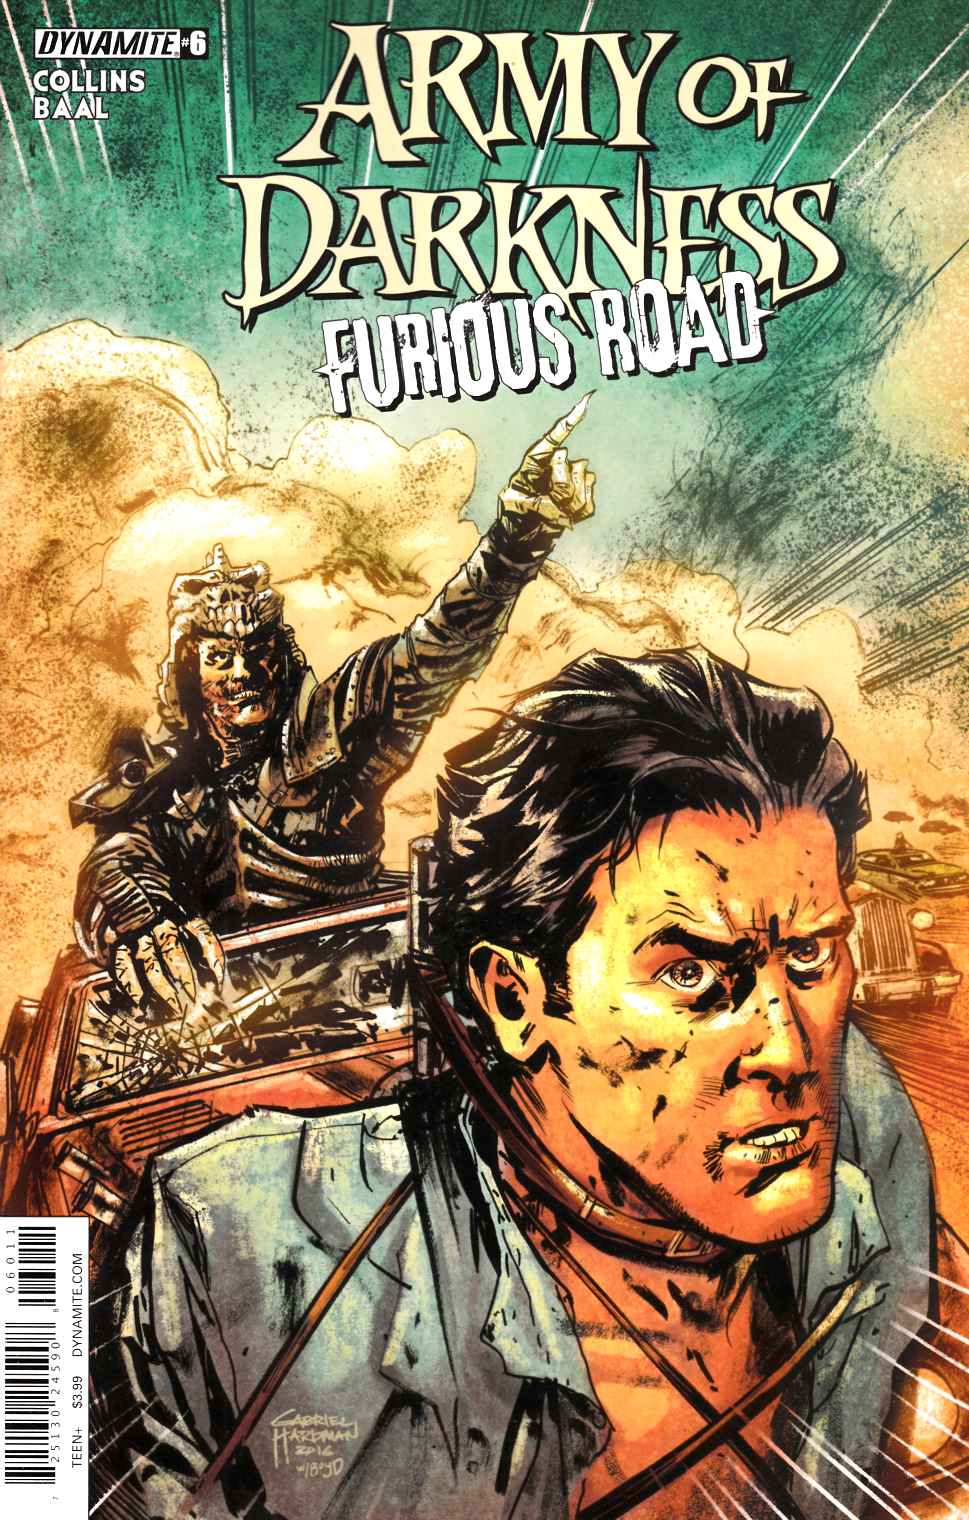 Army of Darkness Furious Road #6 [Dynamite Comic]